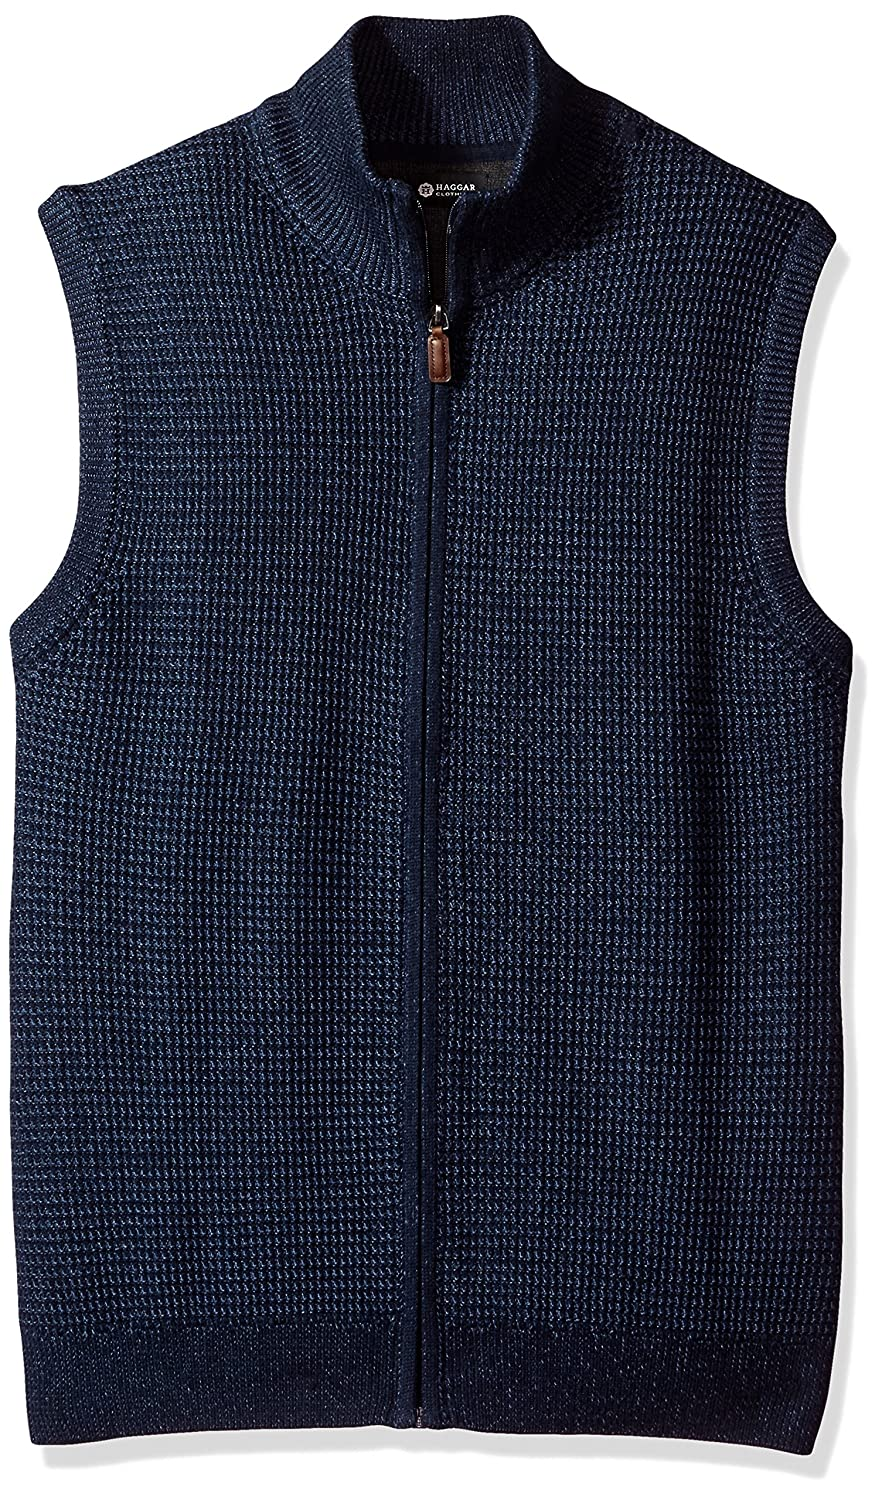 Haggar Men's Zip Front Sweater Vest HMF7F246-R11